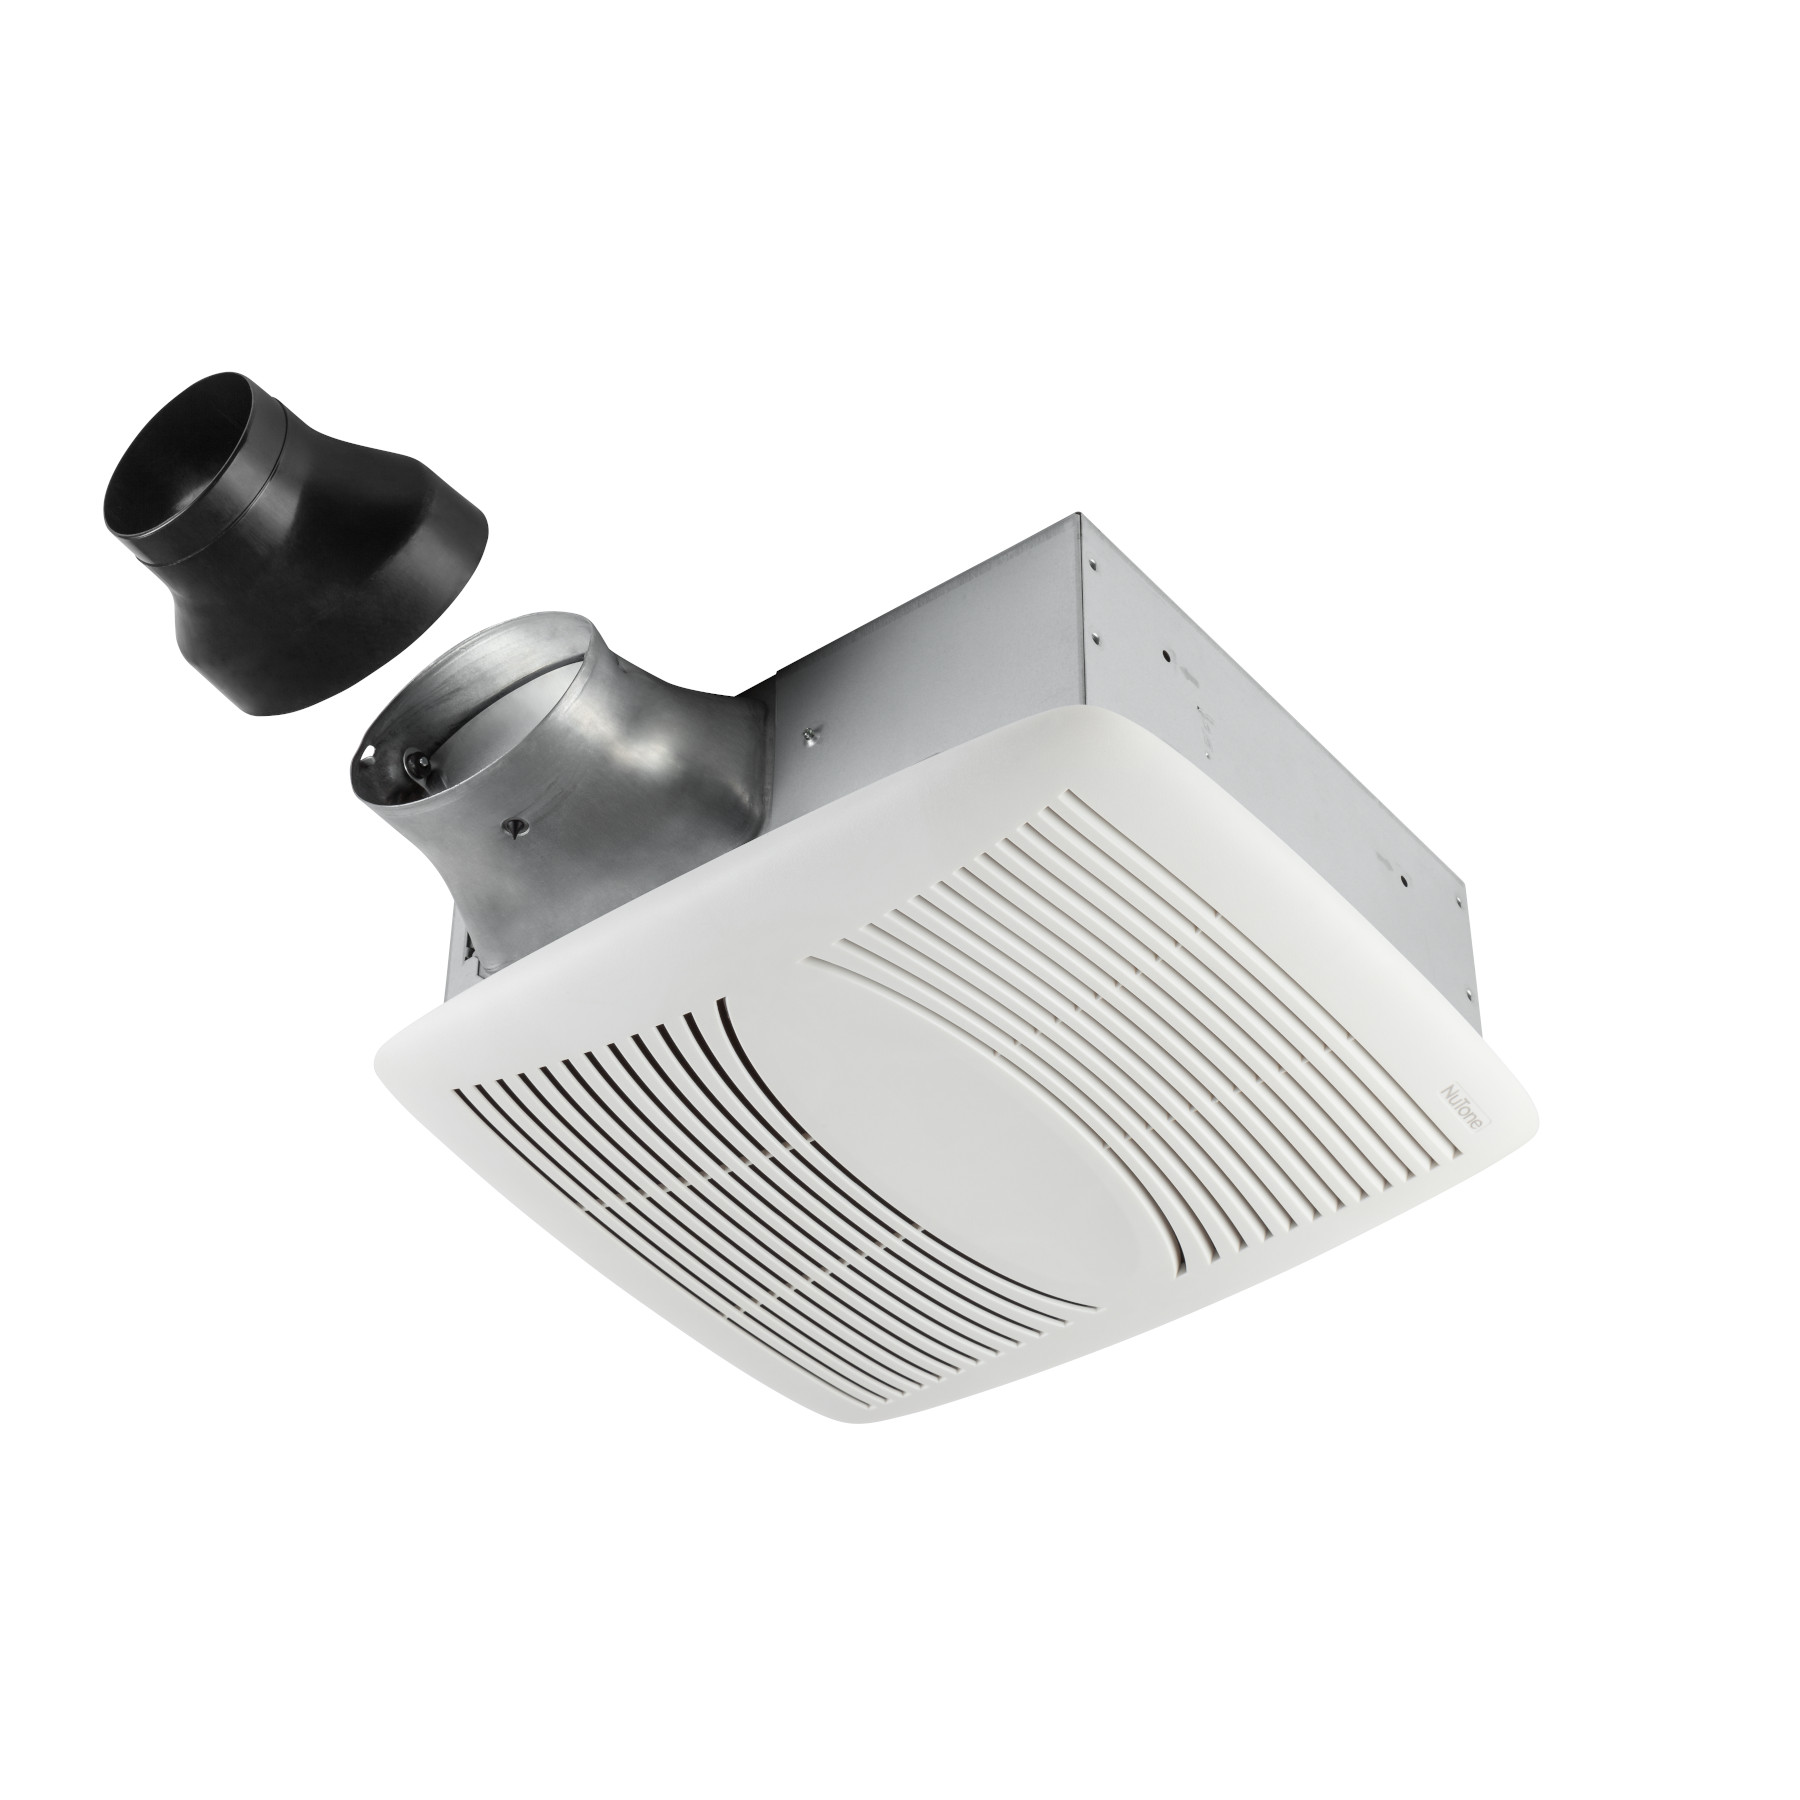 EZ Fit 80 CFM Ceiling Bathroom Exhaust Fan, ENERGY STAR®